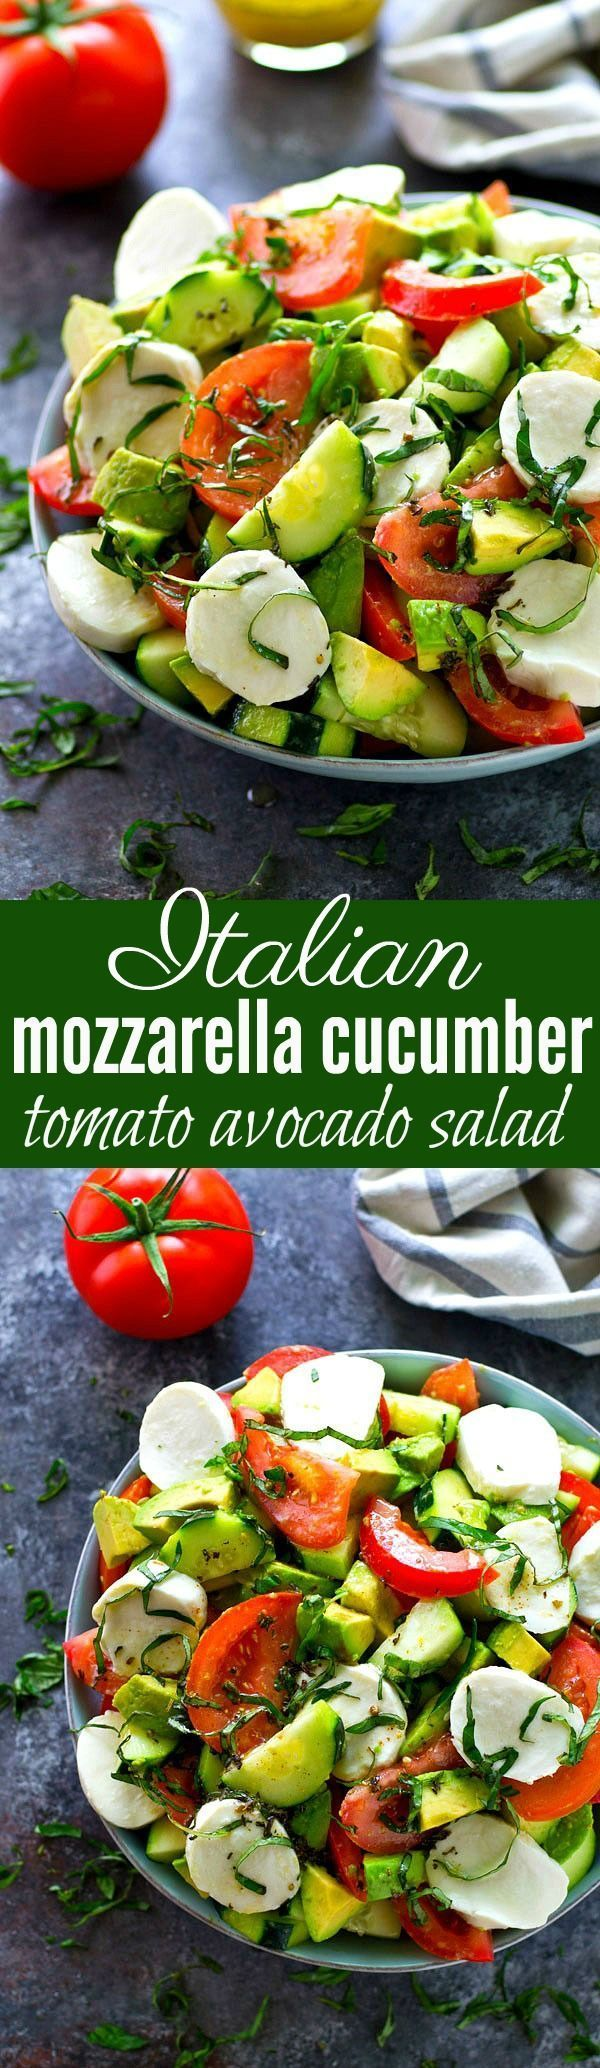 This Italian-style tomato avocado salad is loaded with tons of fresh tomatoes, avocados, cucumbers, and soft mozzarella cheese for one killer summer salad! (baked pasta recipes vegetarian)